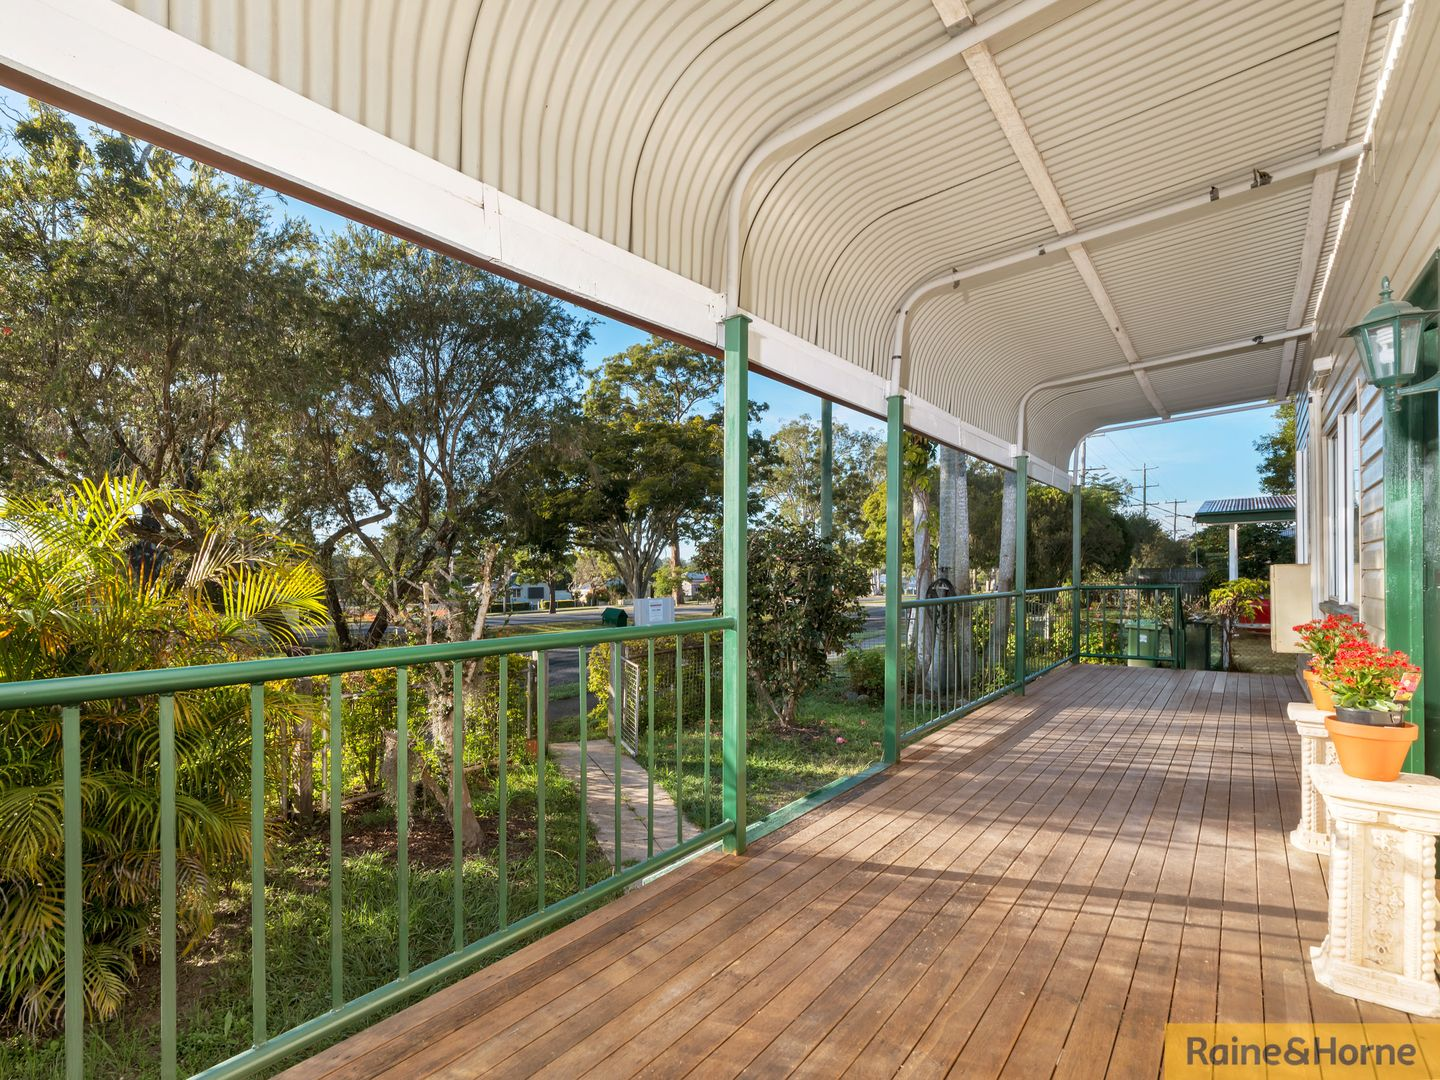 140 ARCHER STREET, Woodford QLD 4514, Image 1